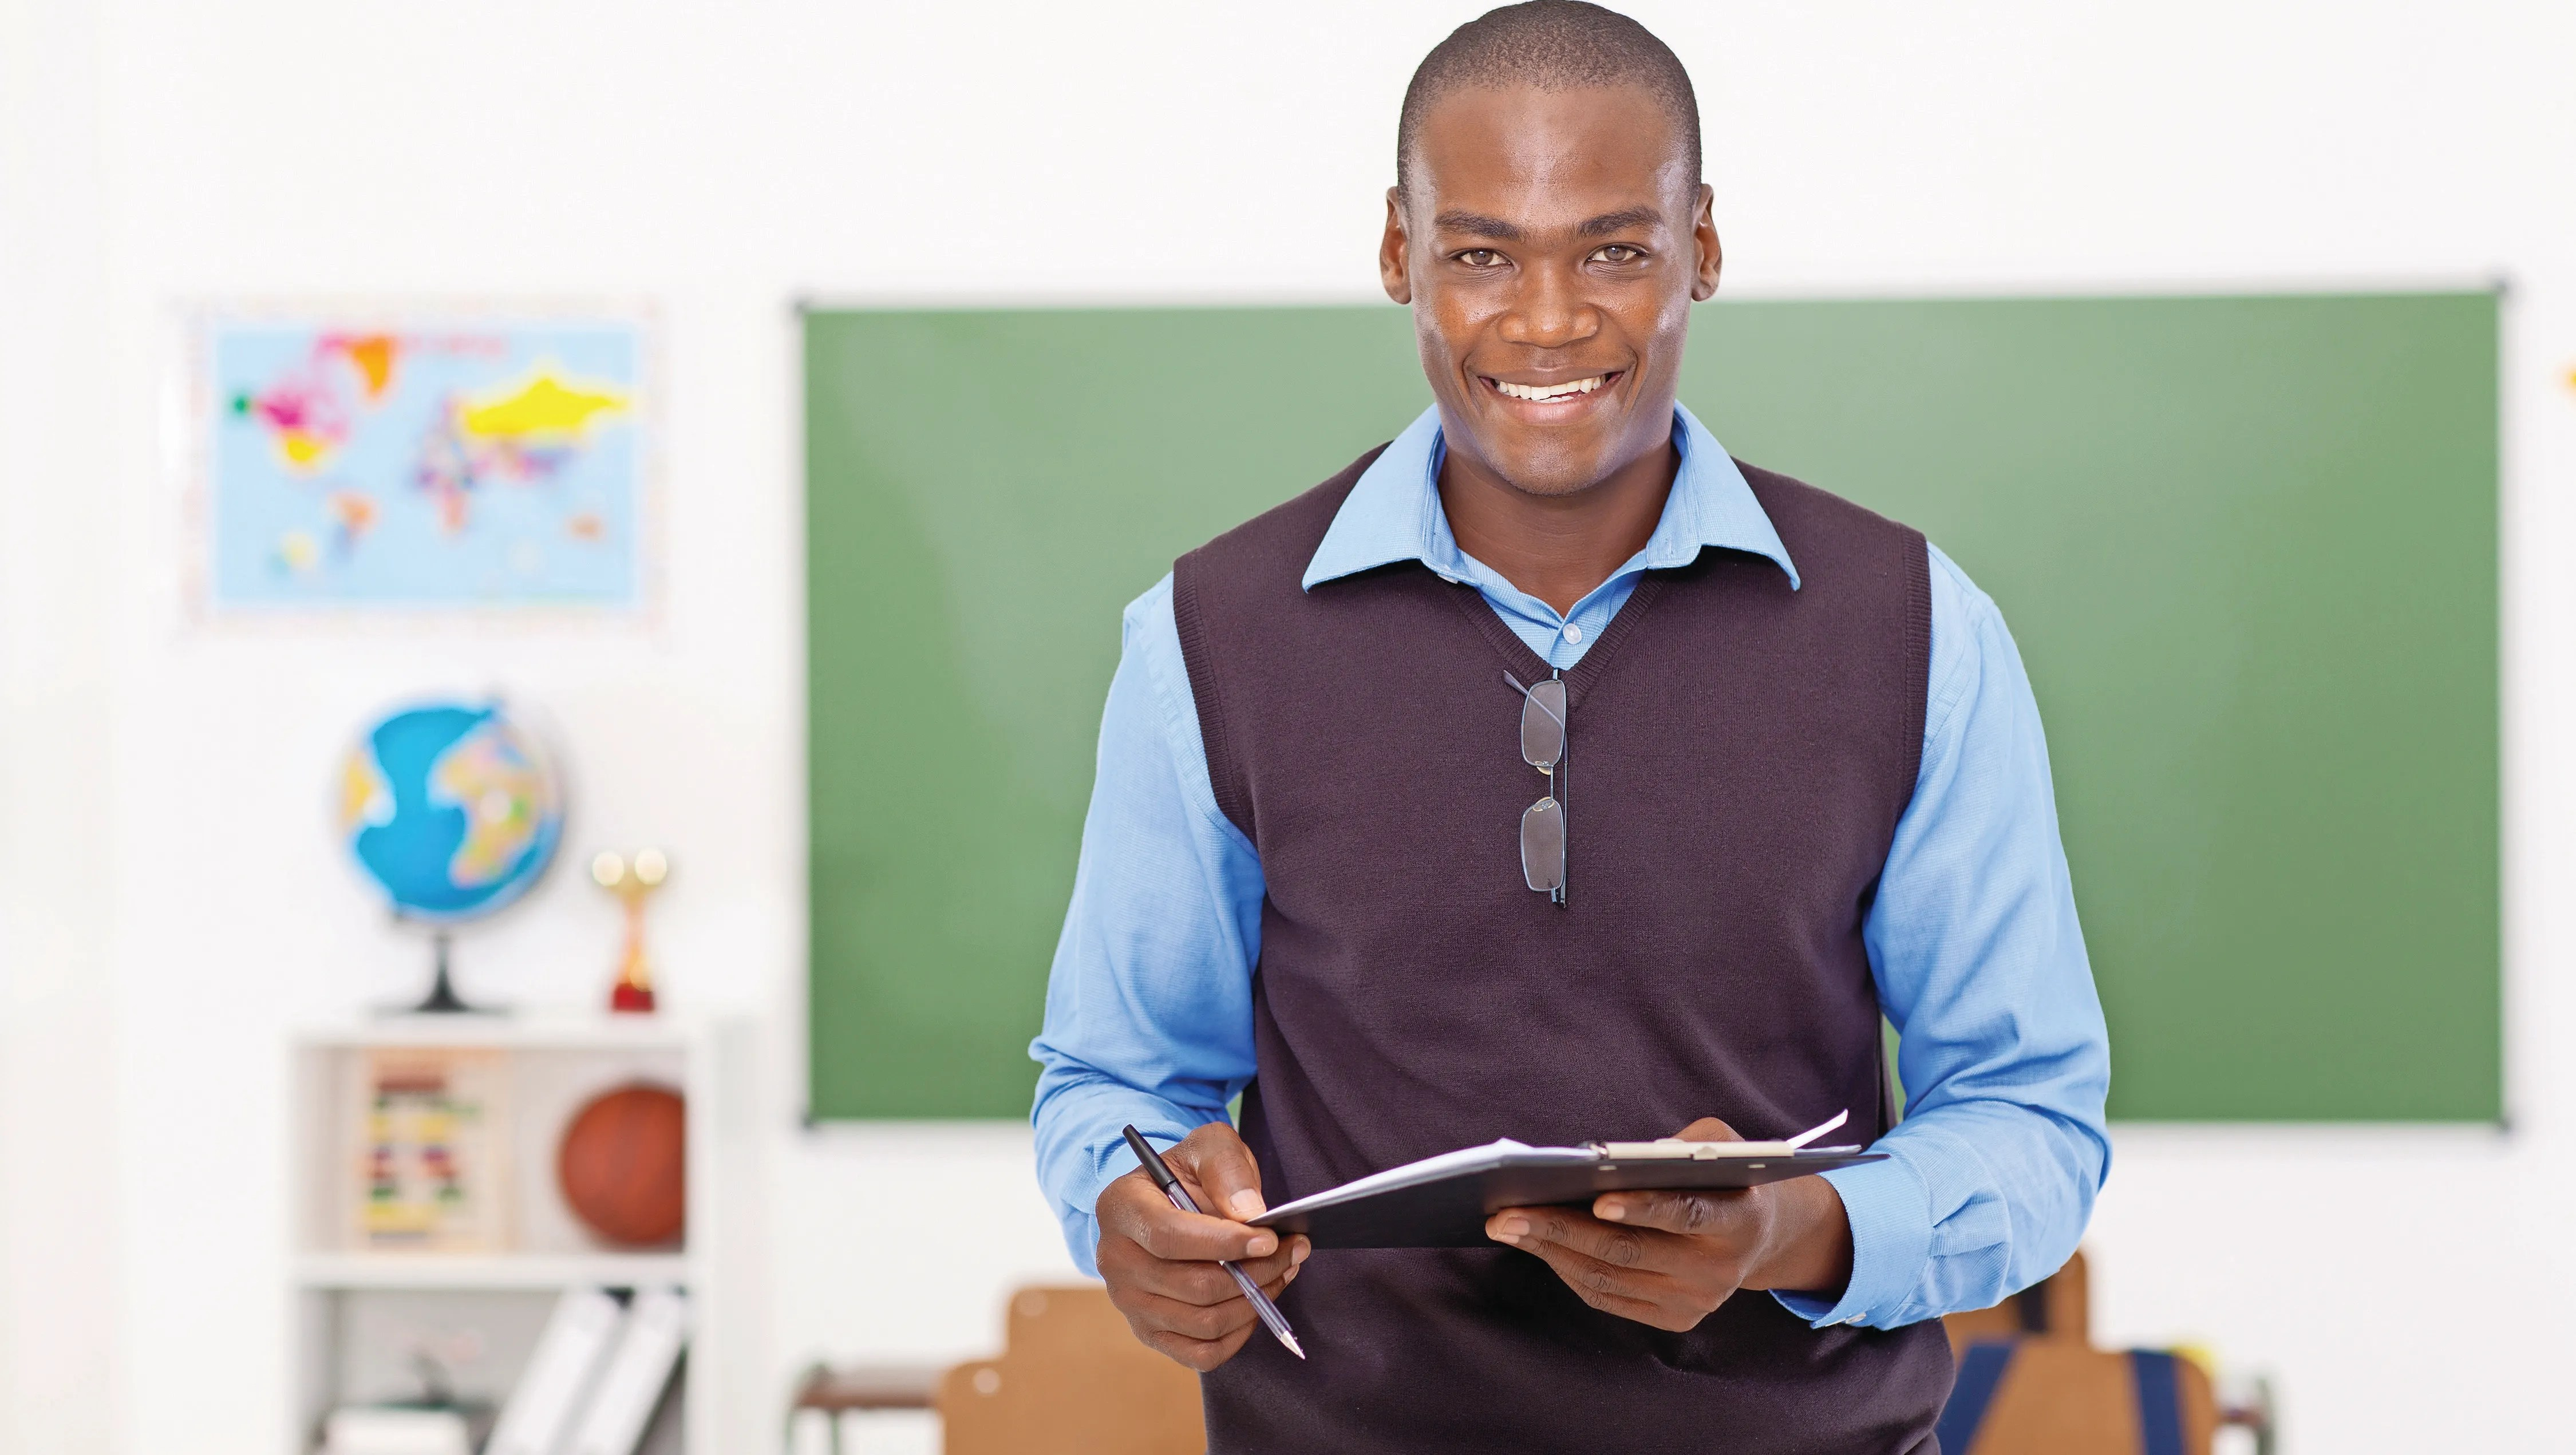 Male Teacher Shortage Affects Boys Role Models